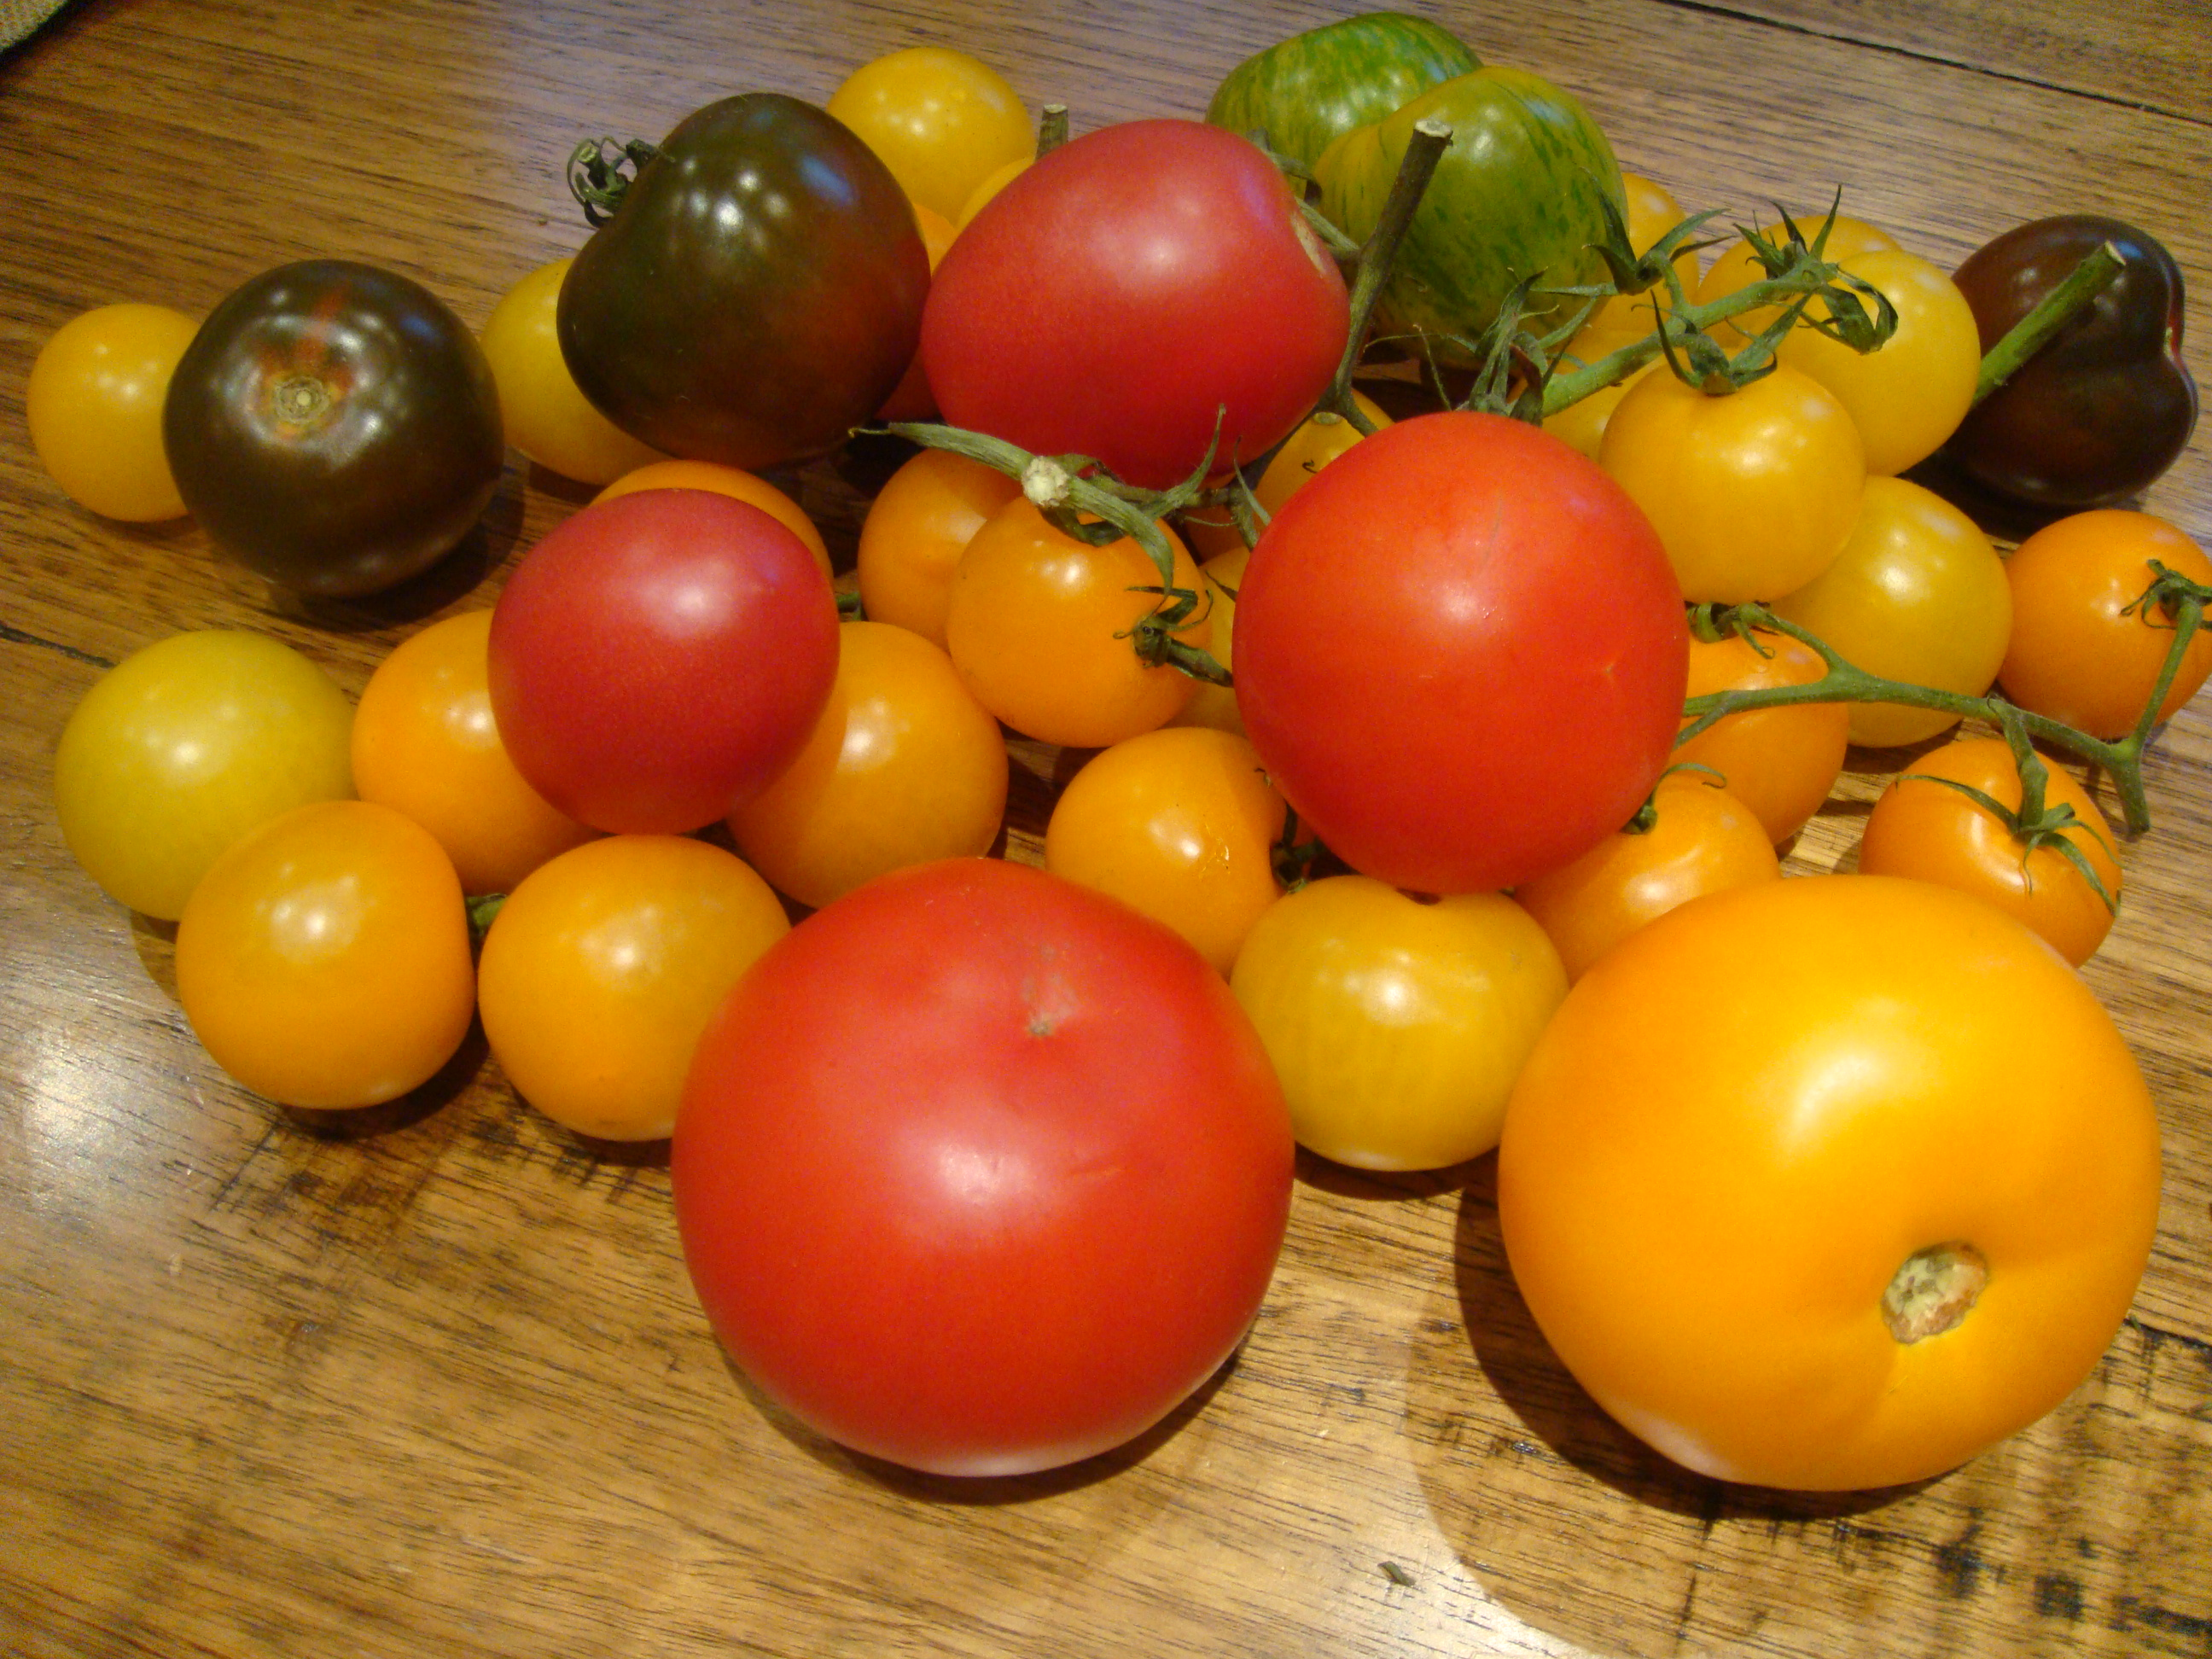 and green and brown toms too!